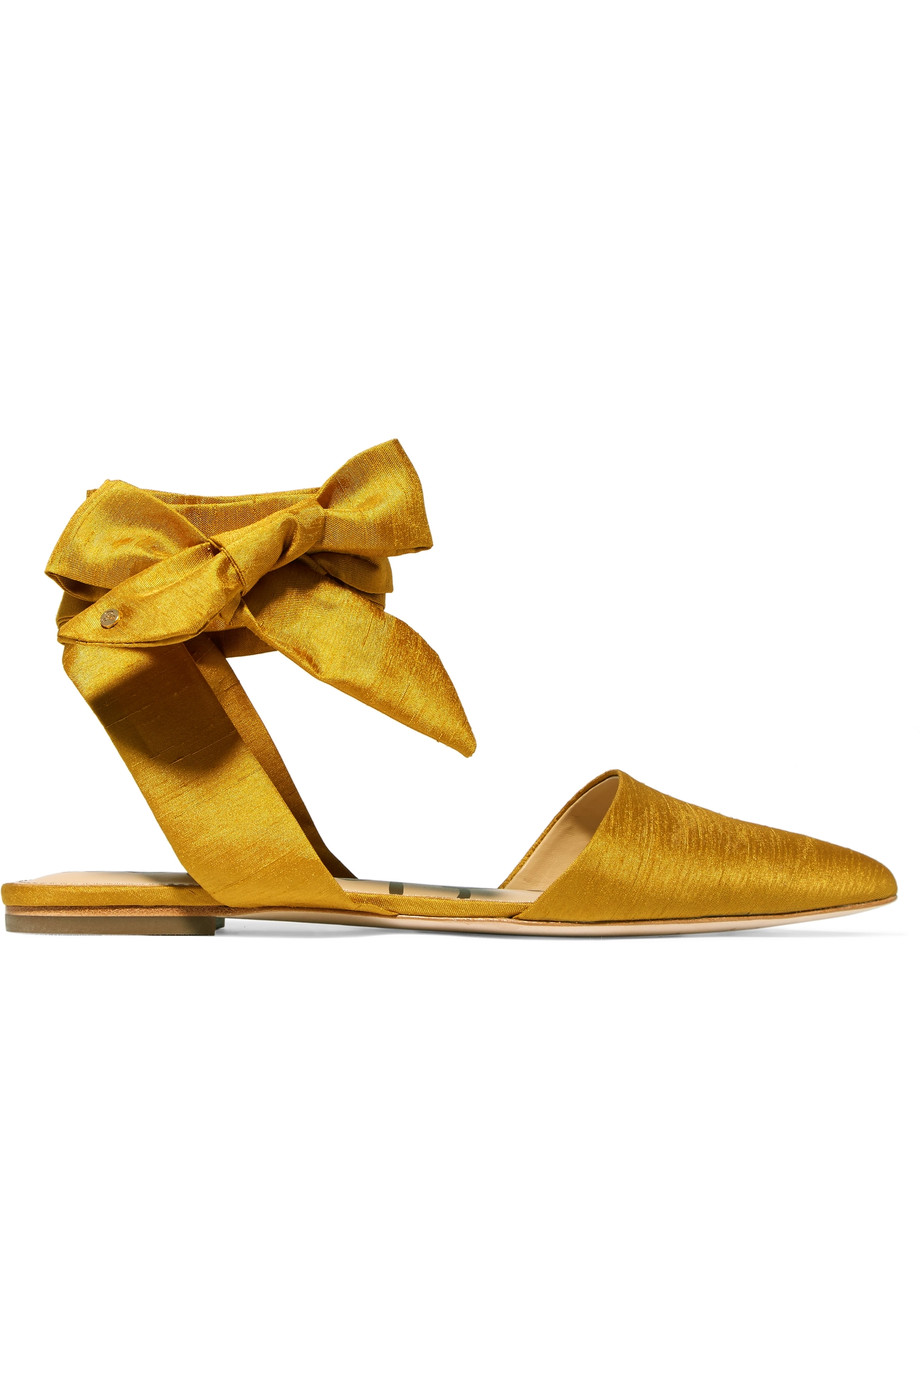 Sam Edelman Brandie Satin Point-toe Flats